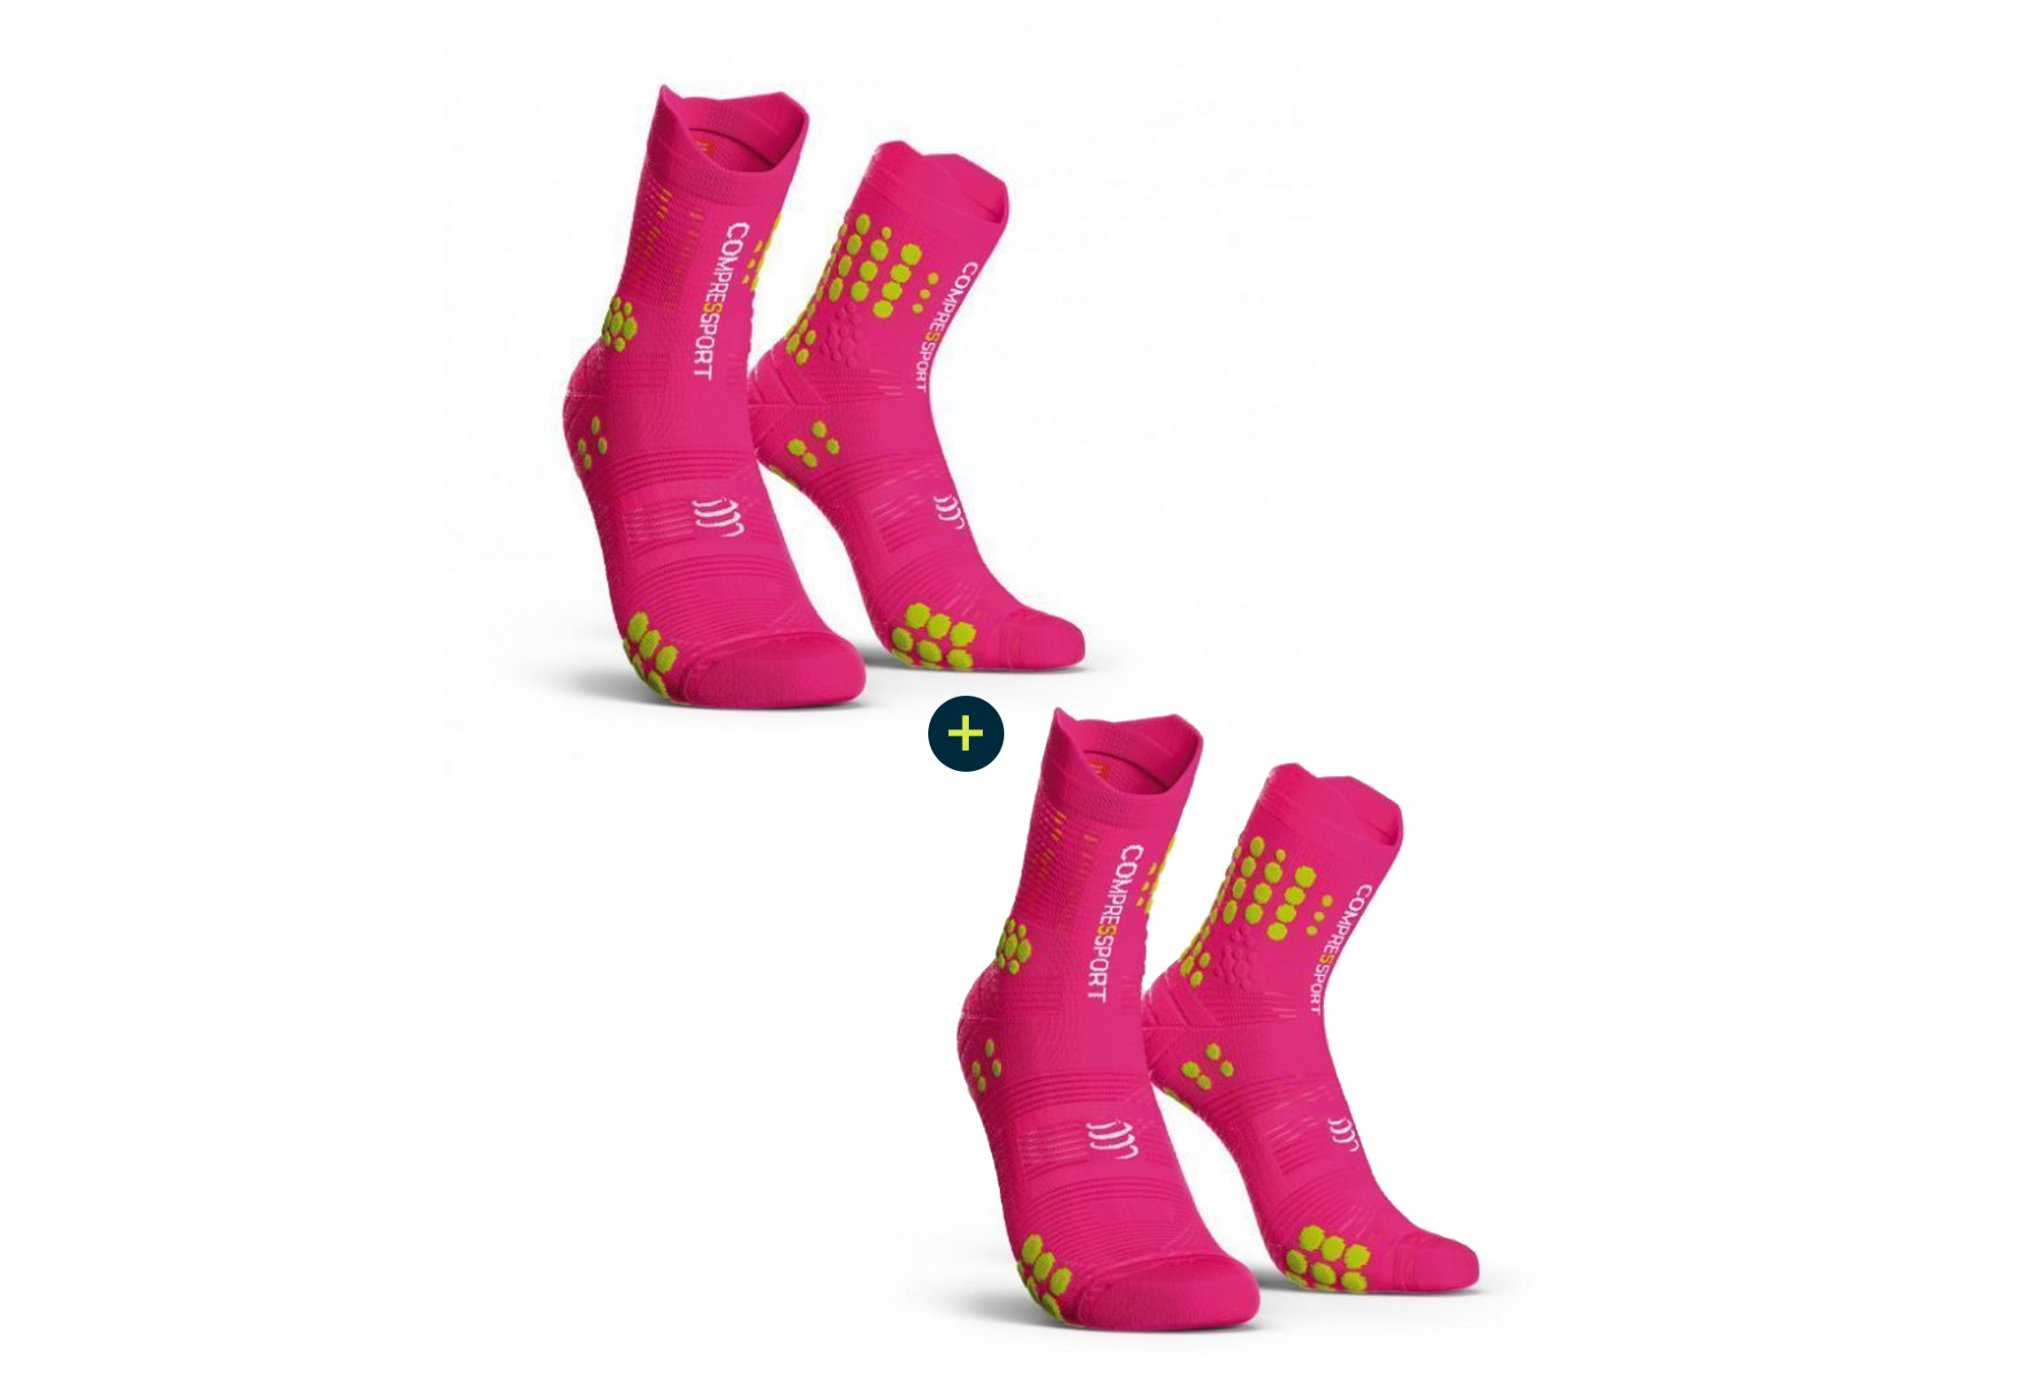 Compressport Pack Pro Racing V 3.0 Trail Chaussettes